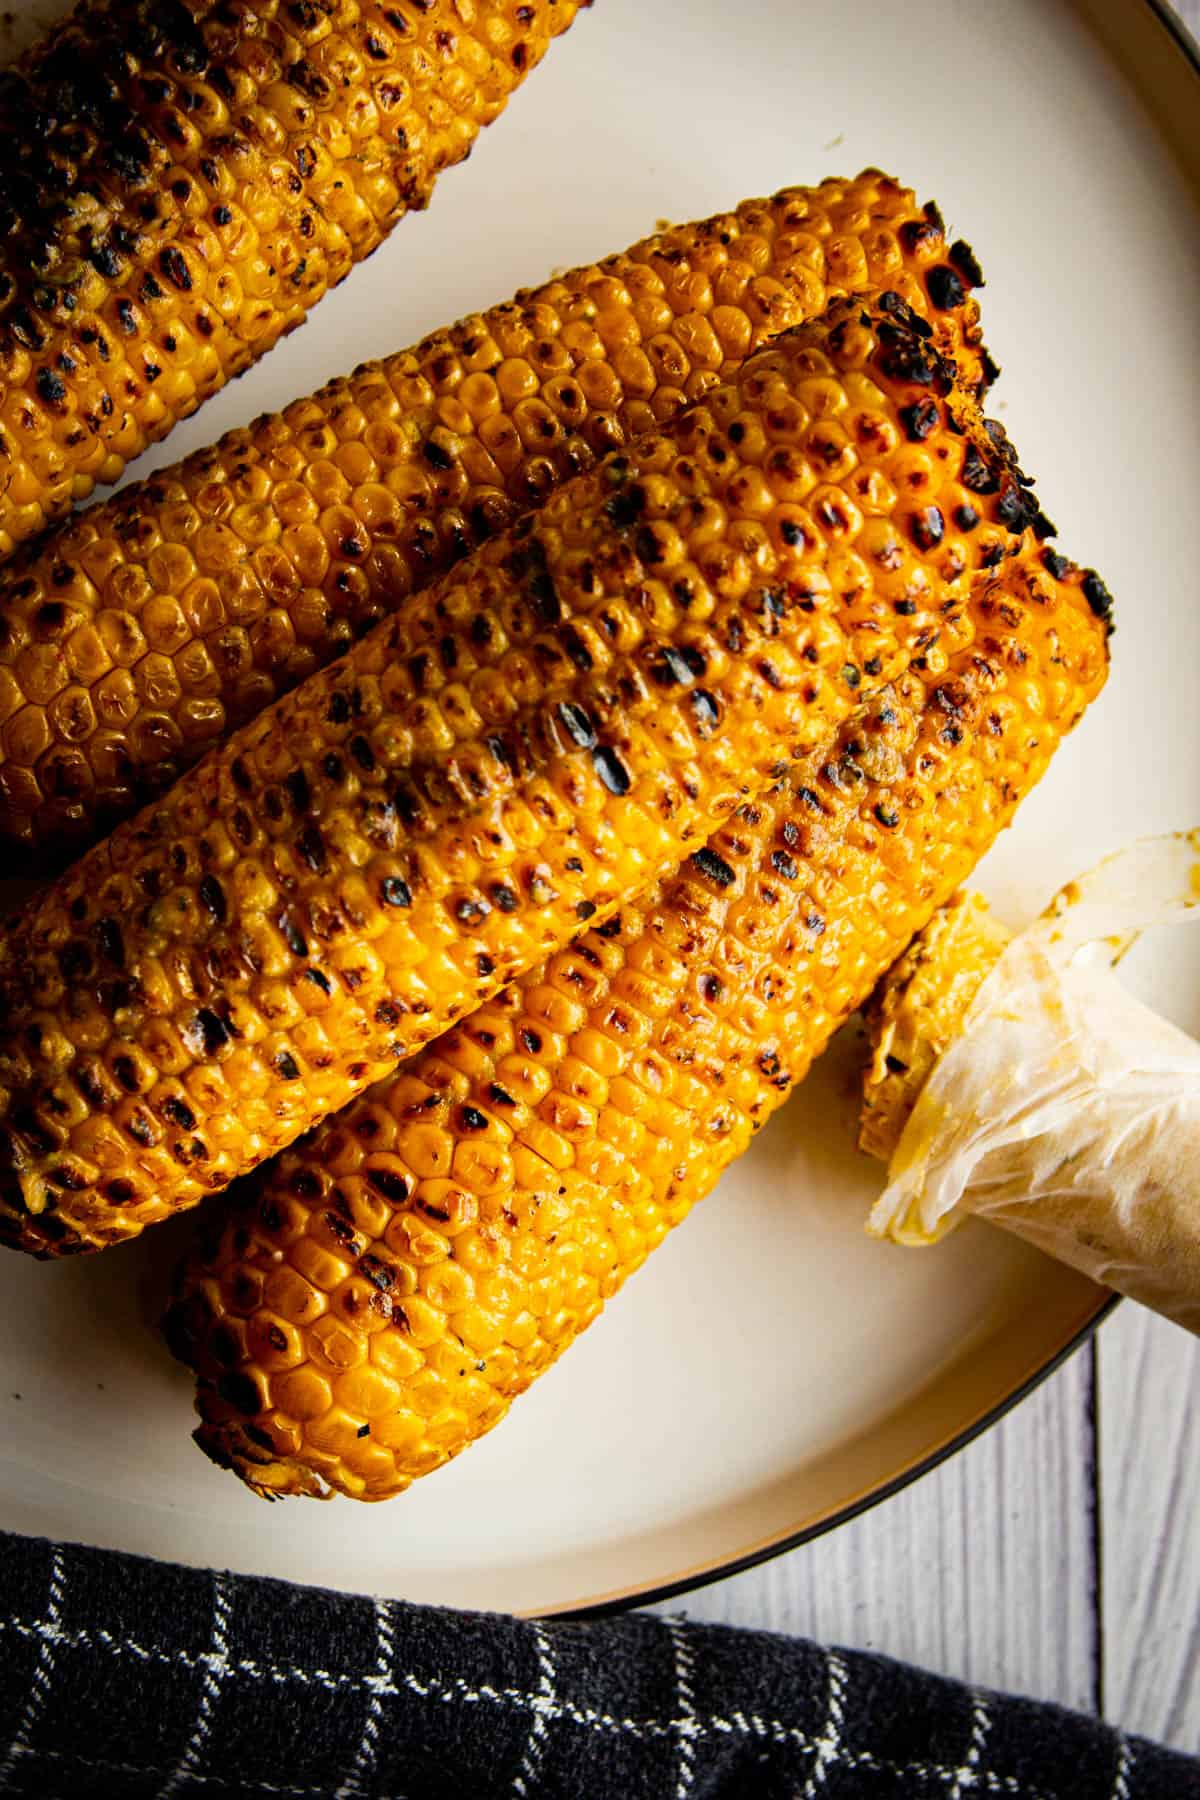 Roasted and charred corn on a plate with umami butter on the side.